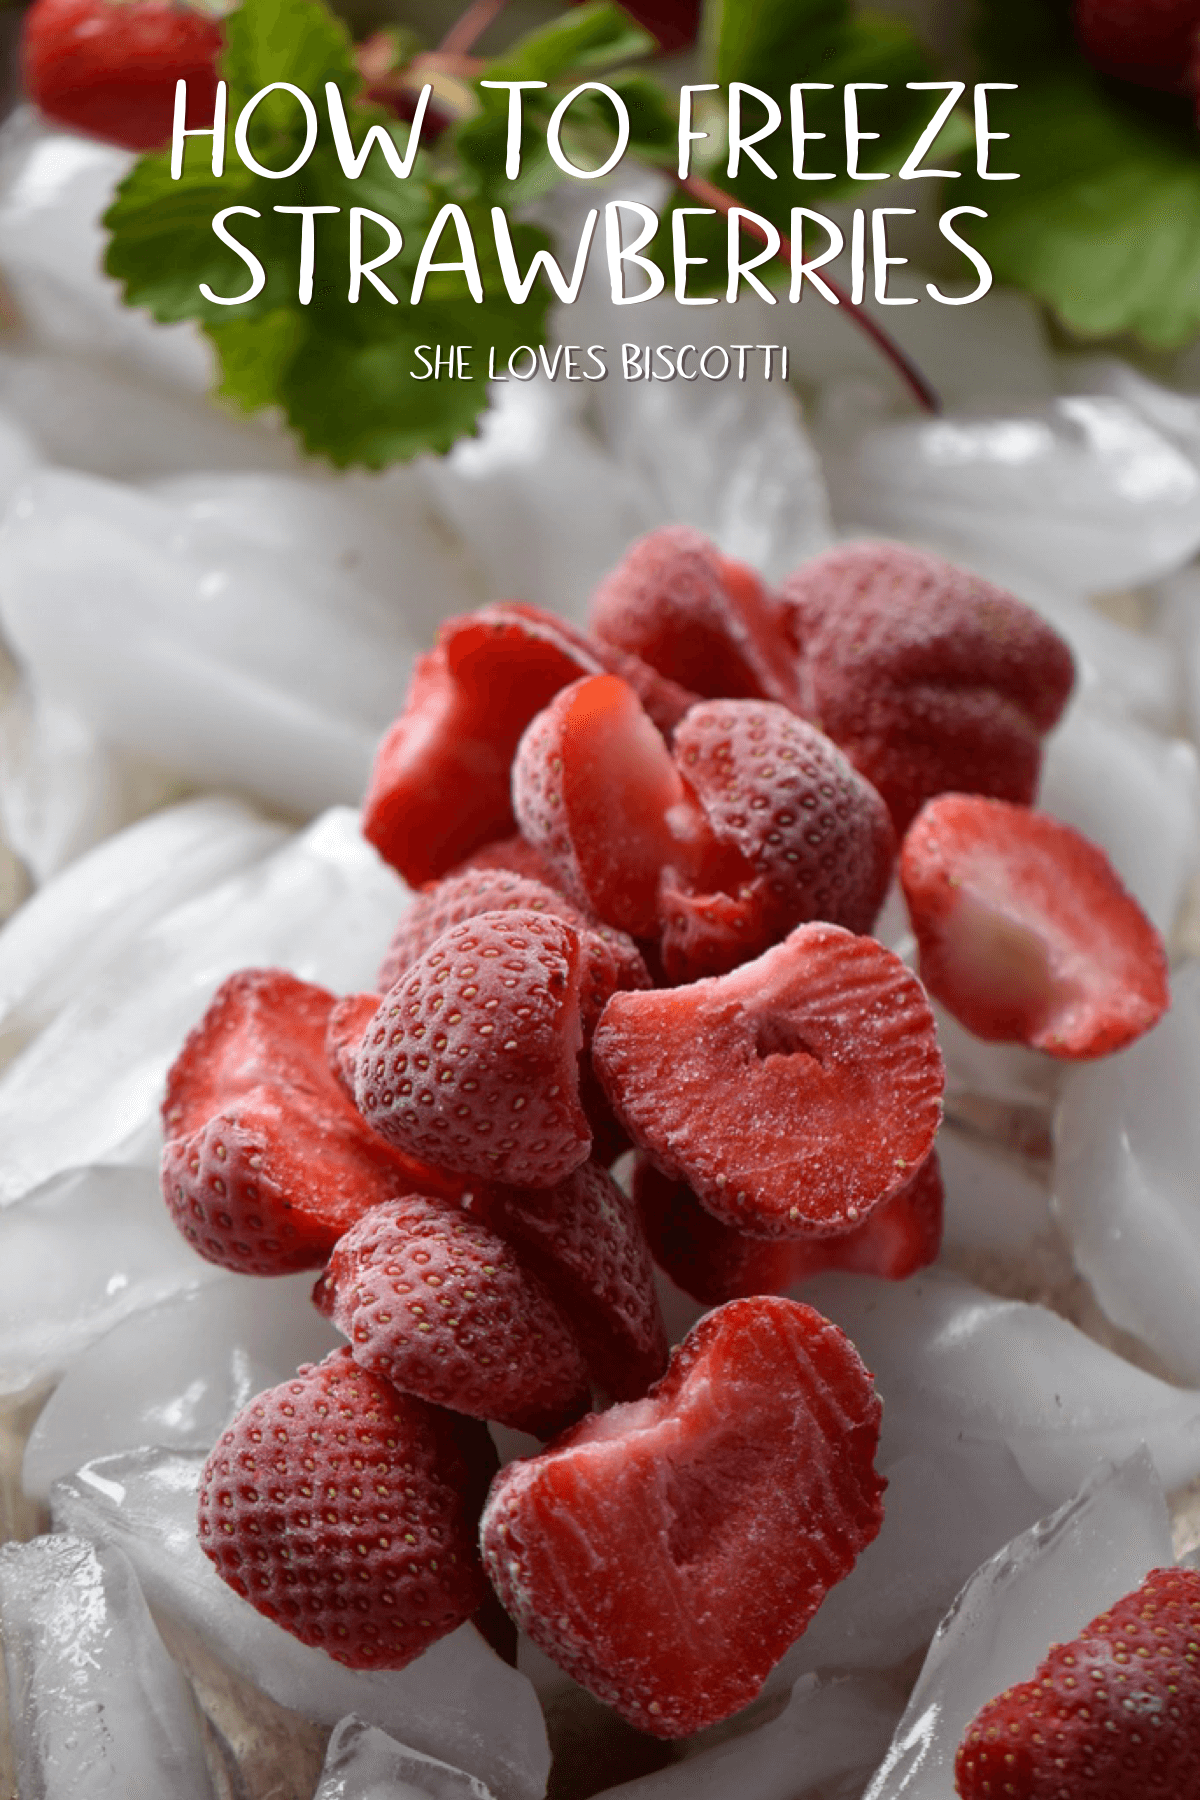 How to freeze strawberries the right way so that you have the option of thawing out the exact amount that you need. #shelovesbiscotti #strawberries #diy #howtofreezestrawberries #howto #strawberry #frozenberry #smoothies #smoothie